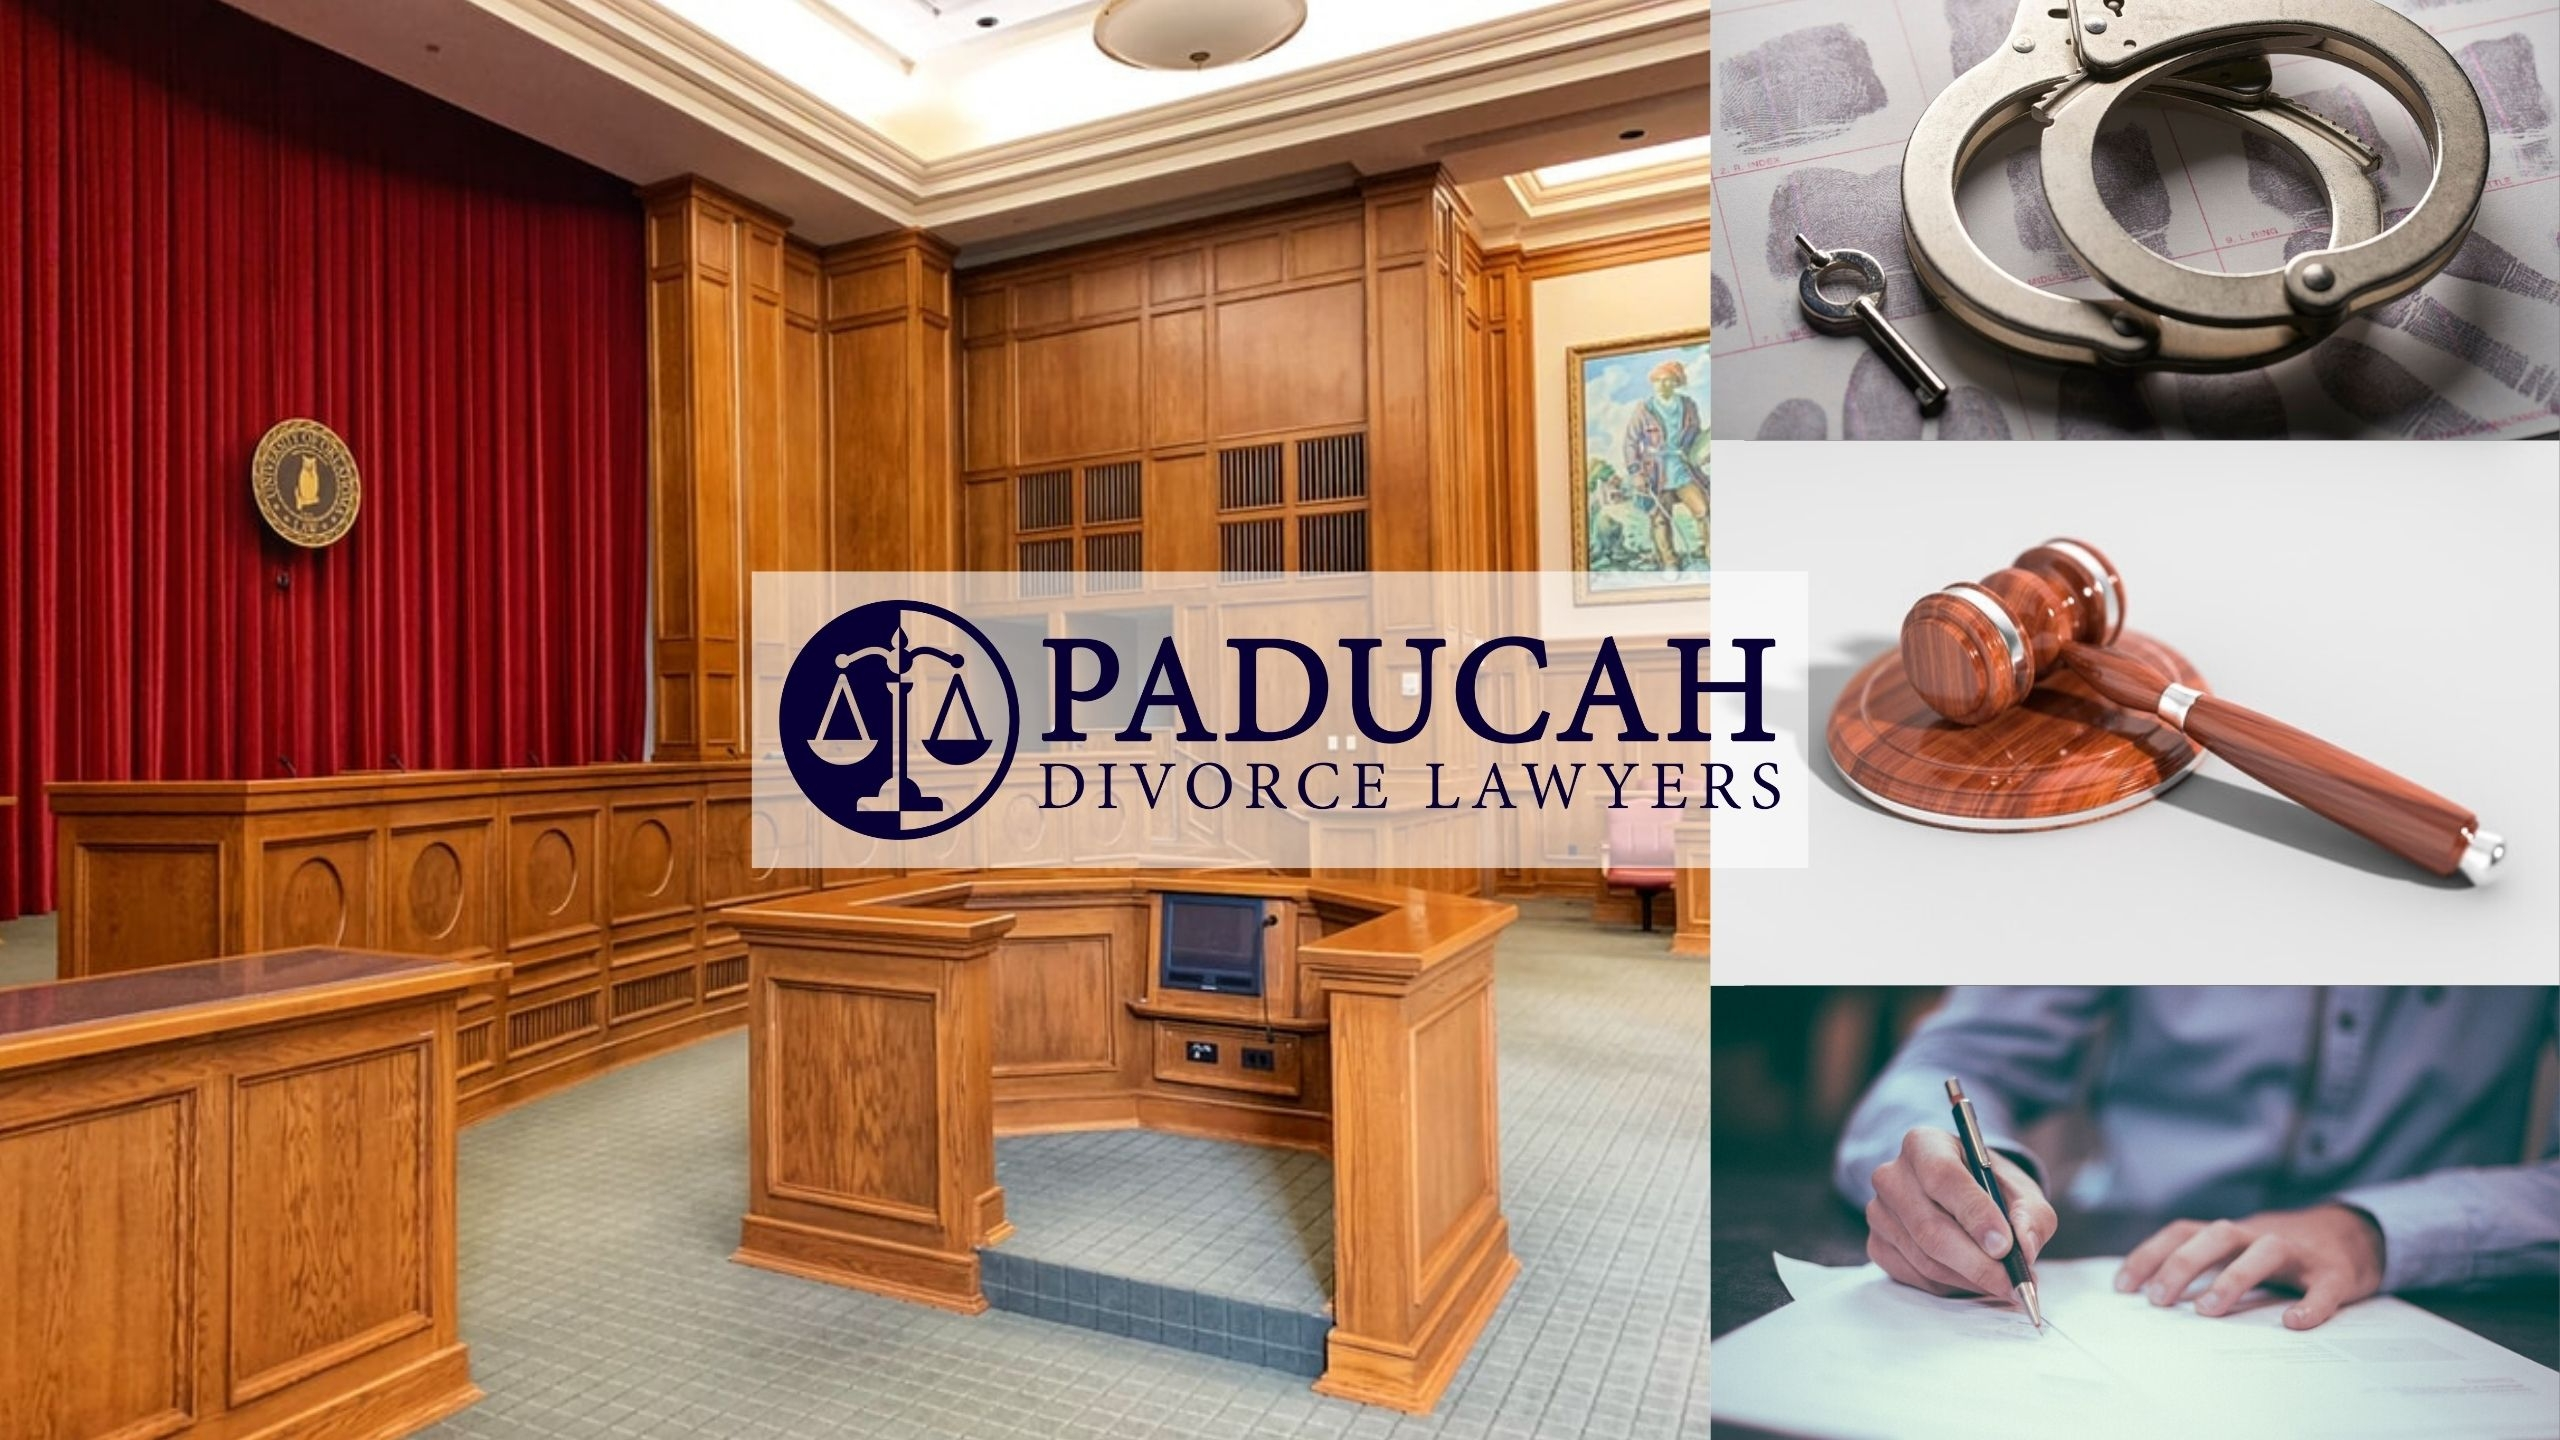 Paducah Divorce Lawyers (@paducahlawyers) Cover Image